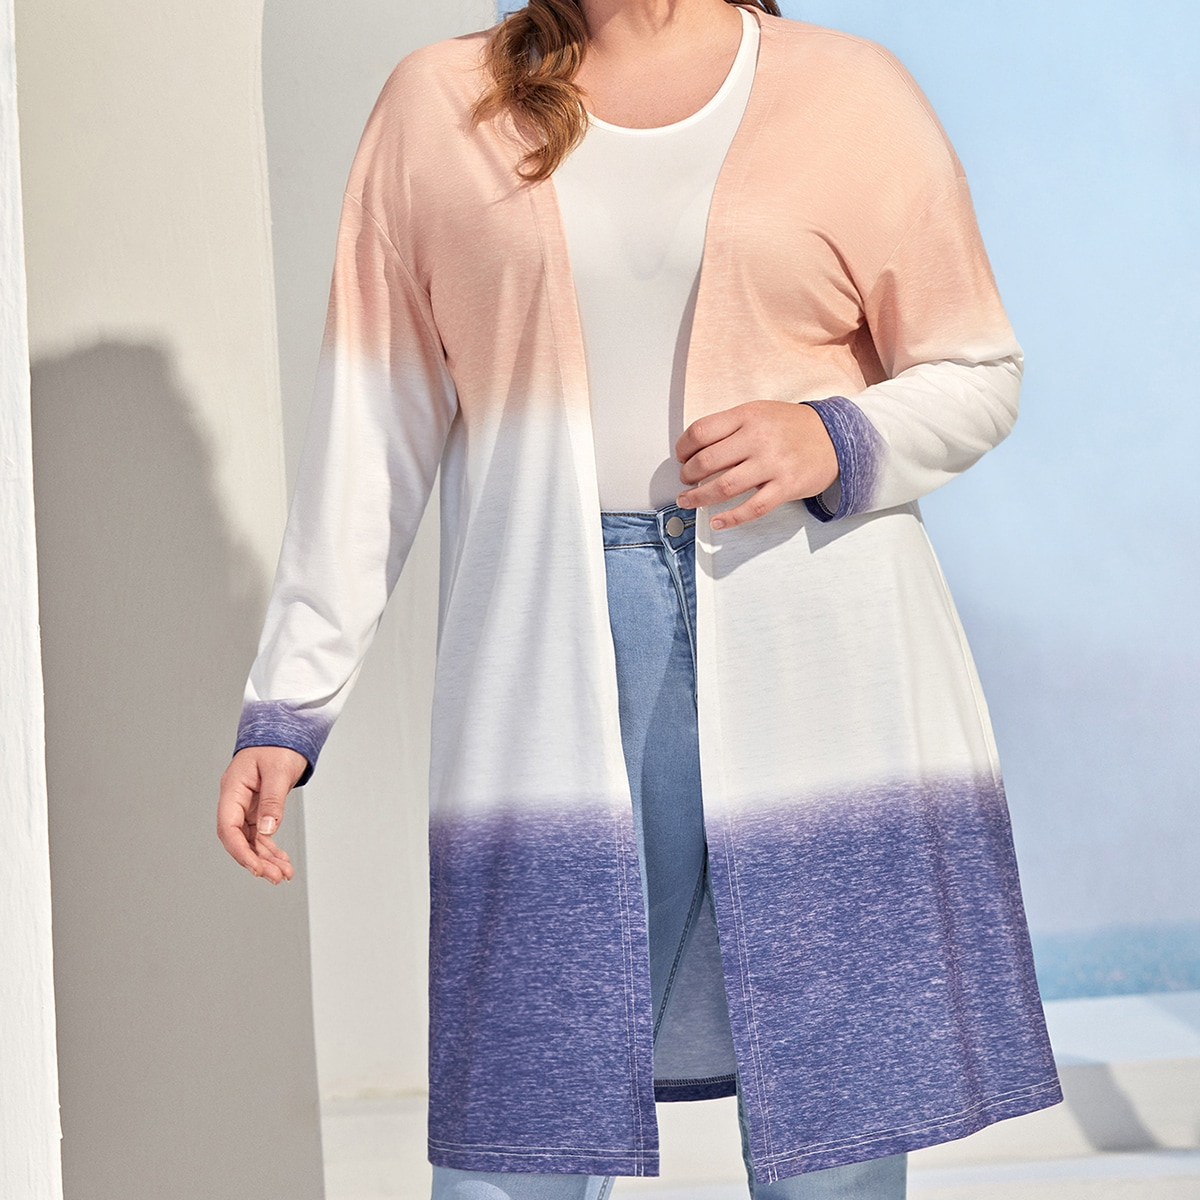 SHEIN Casual Ombre Grote maat: mantel